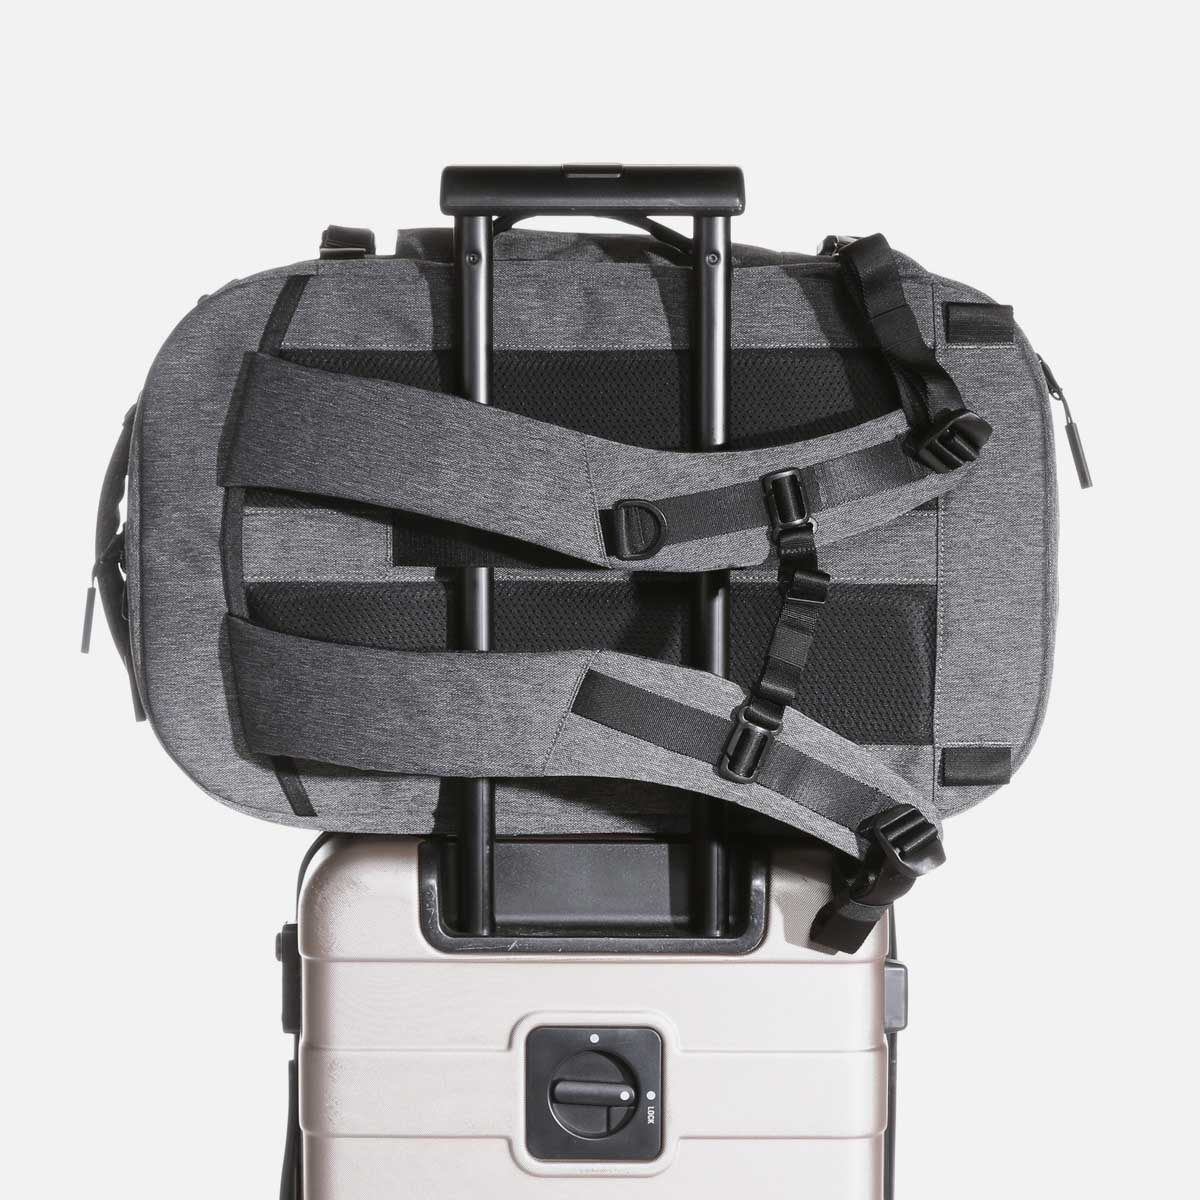 22007_tp2_gray_luggage.JPG